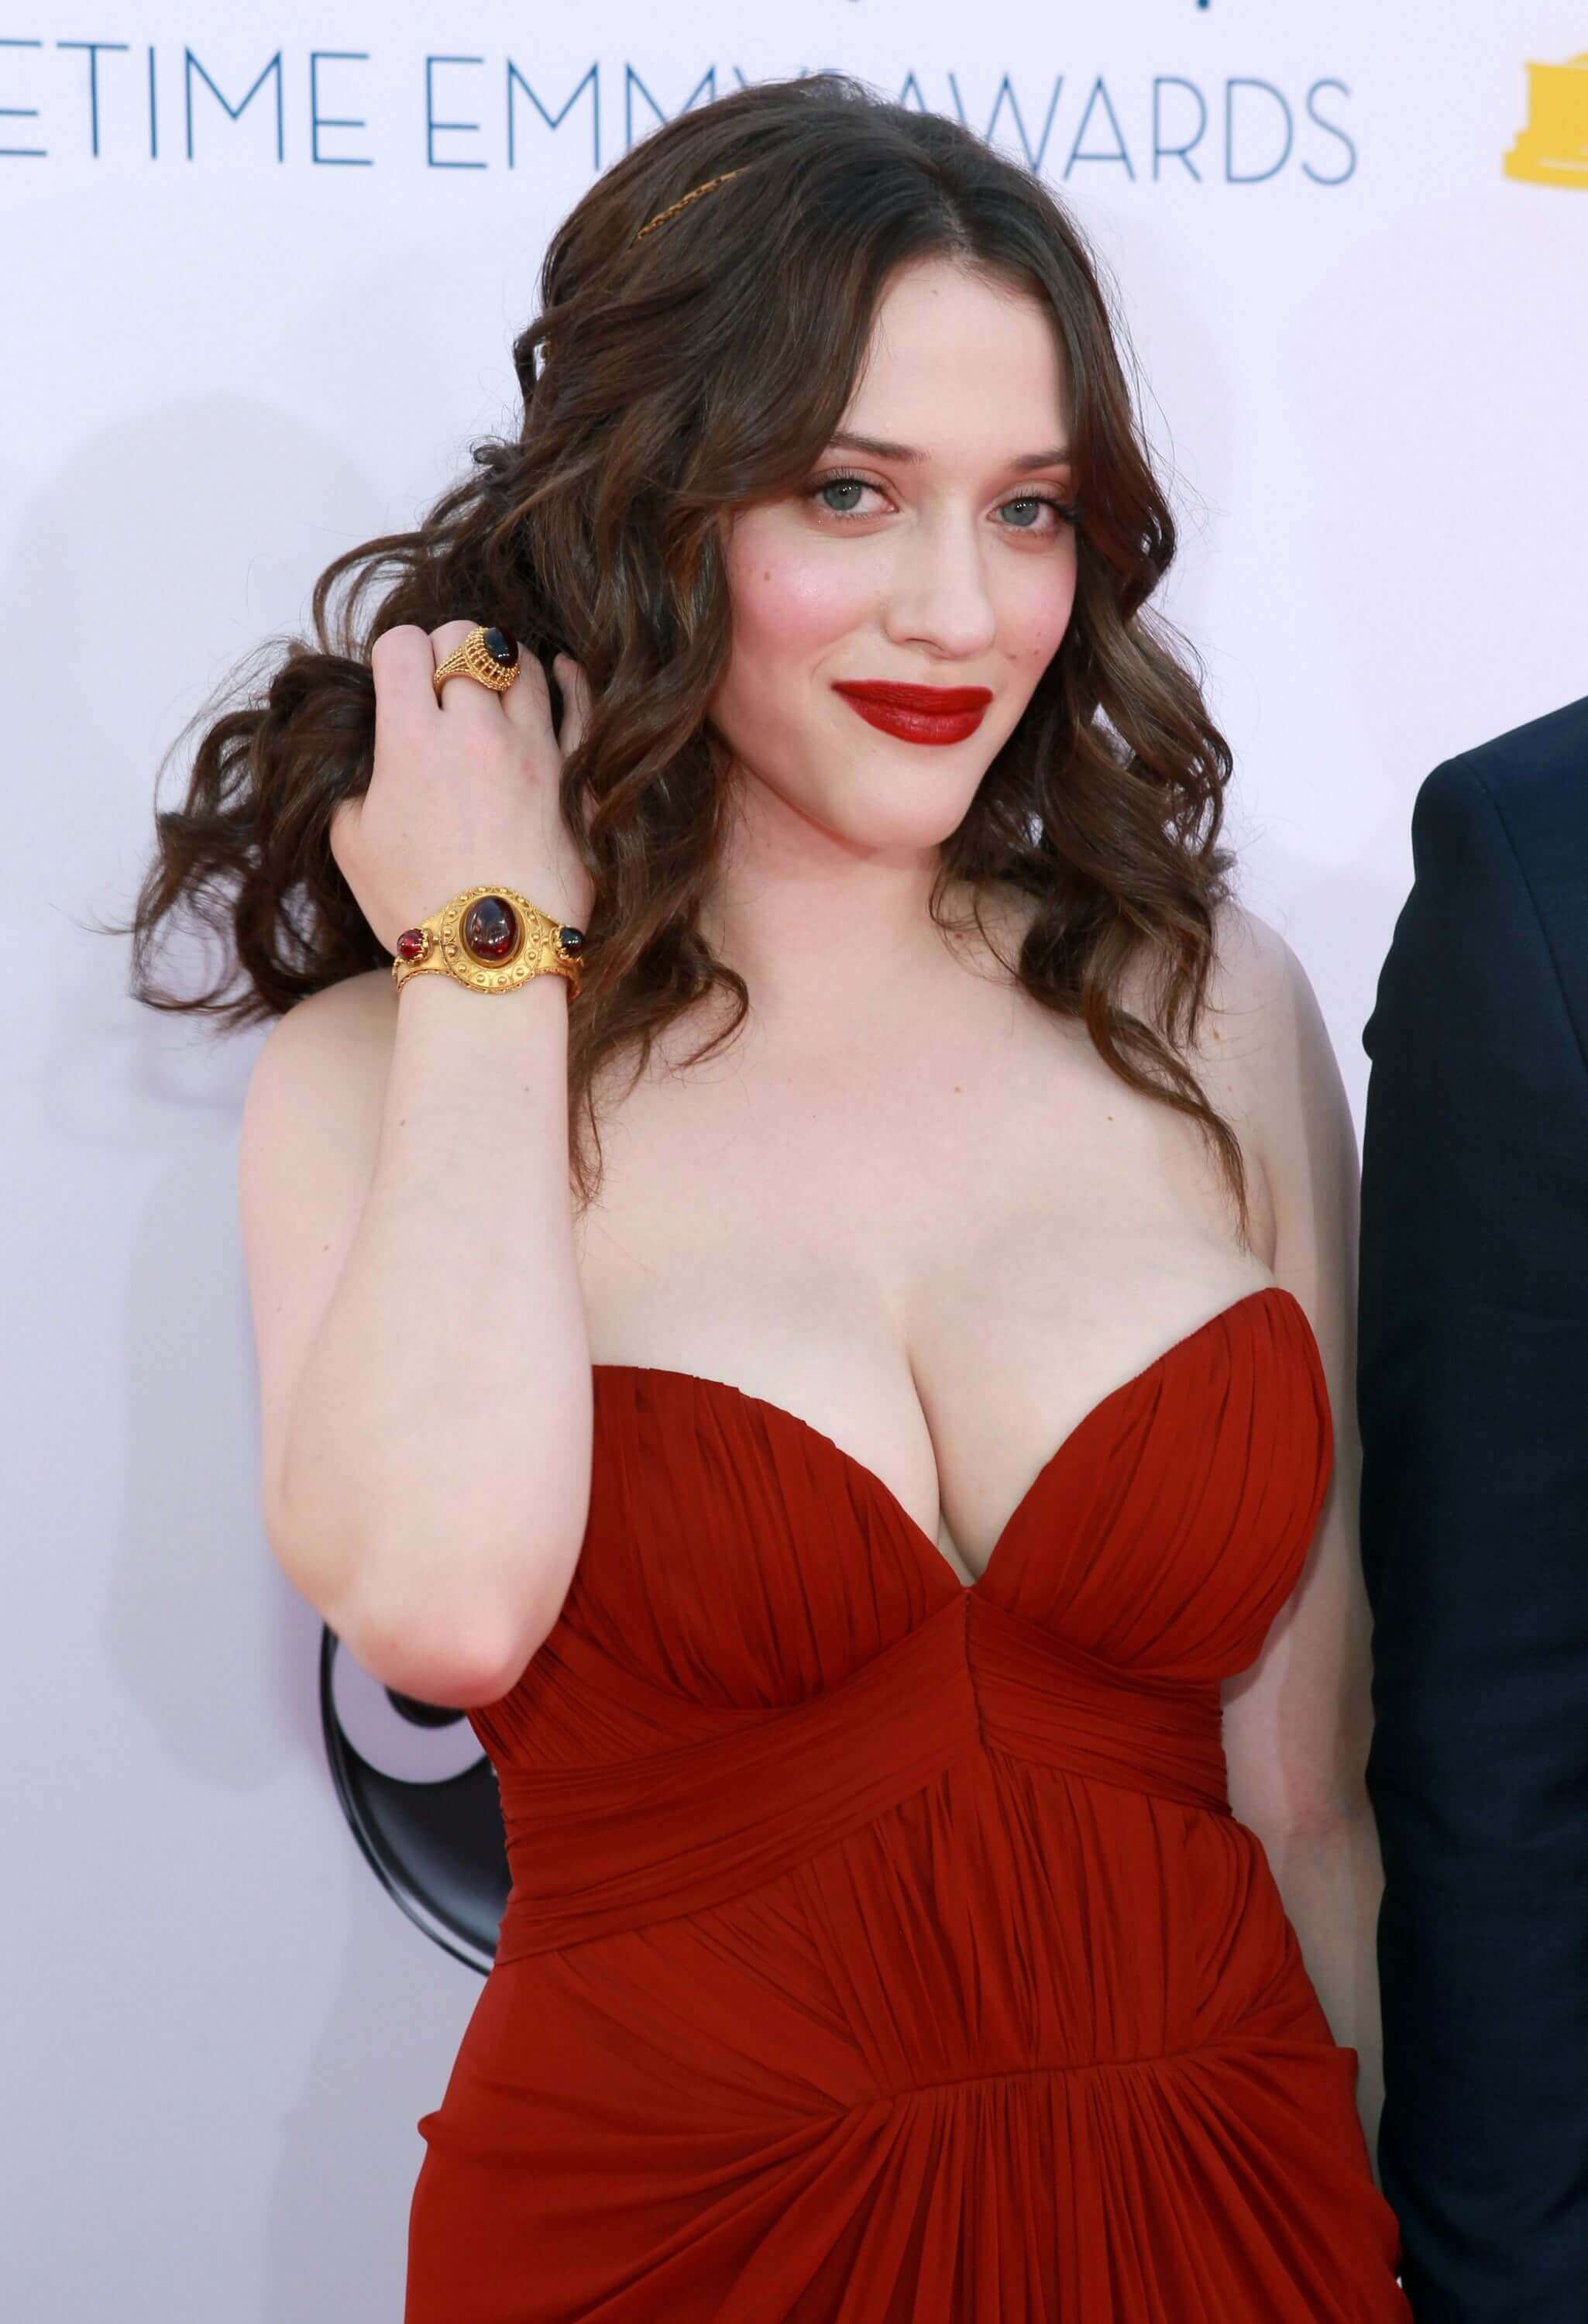 Kat Dennings Nude Sexy Leaked TheFappening (156 Photos